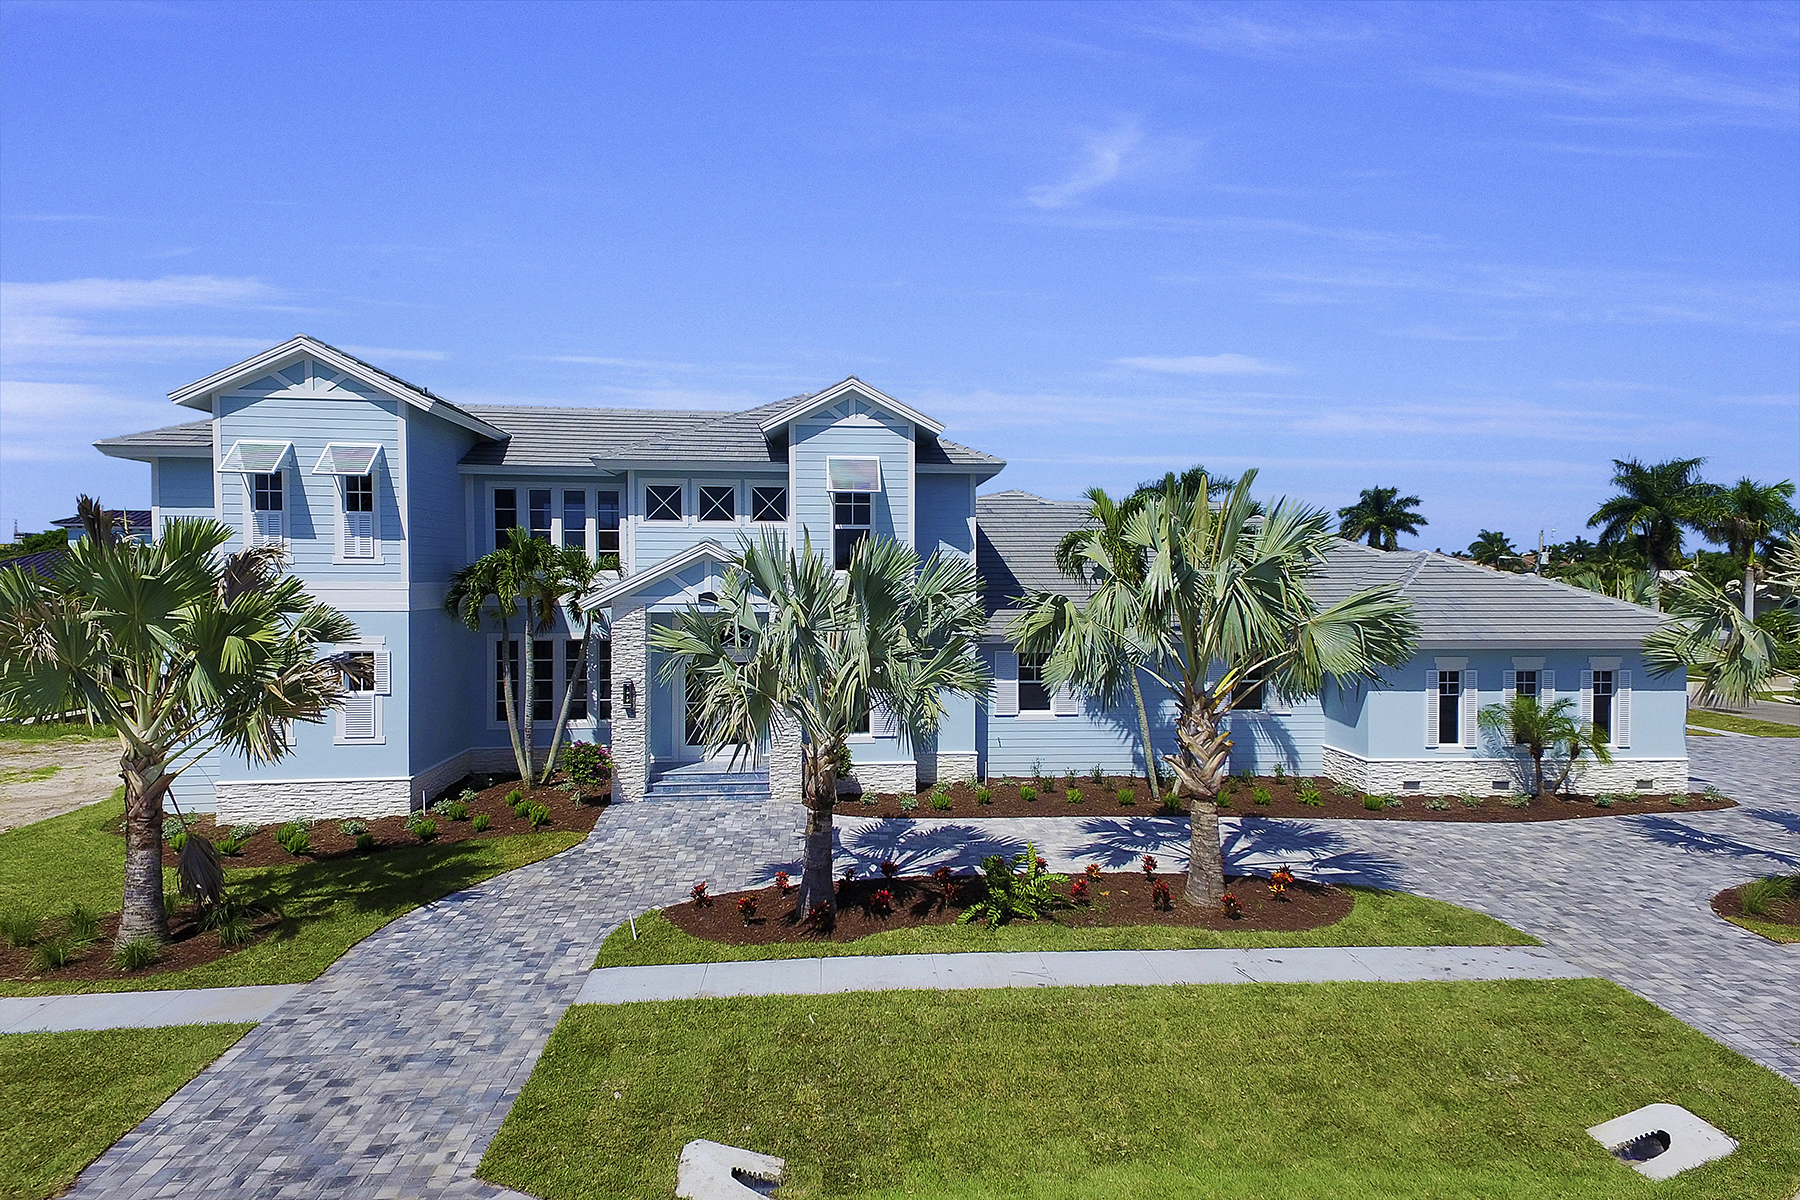 Single Family Home for Sale at MARCO ISLAND 356 S Heathwood Dr, Marco Island, Florida 34145 United States